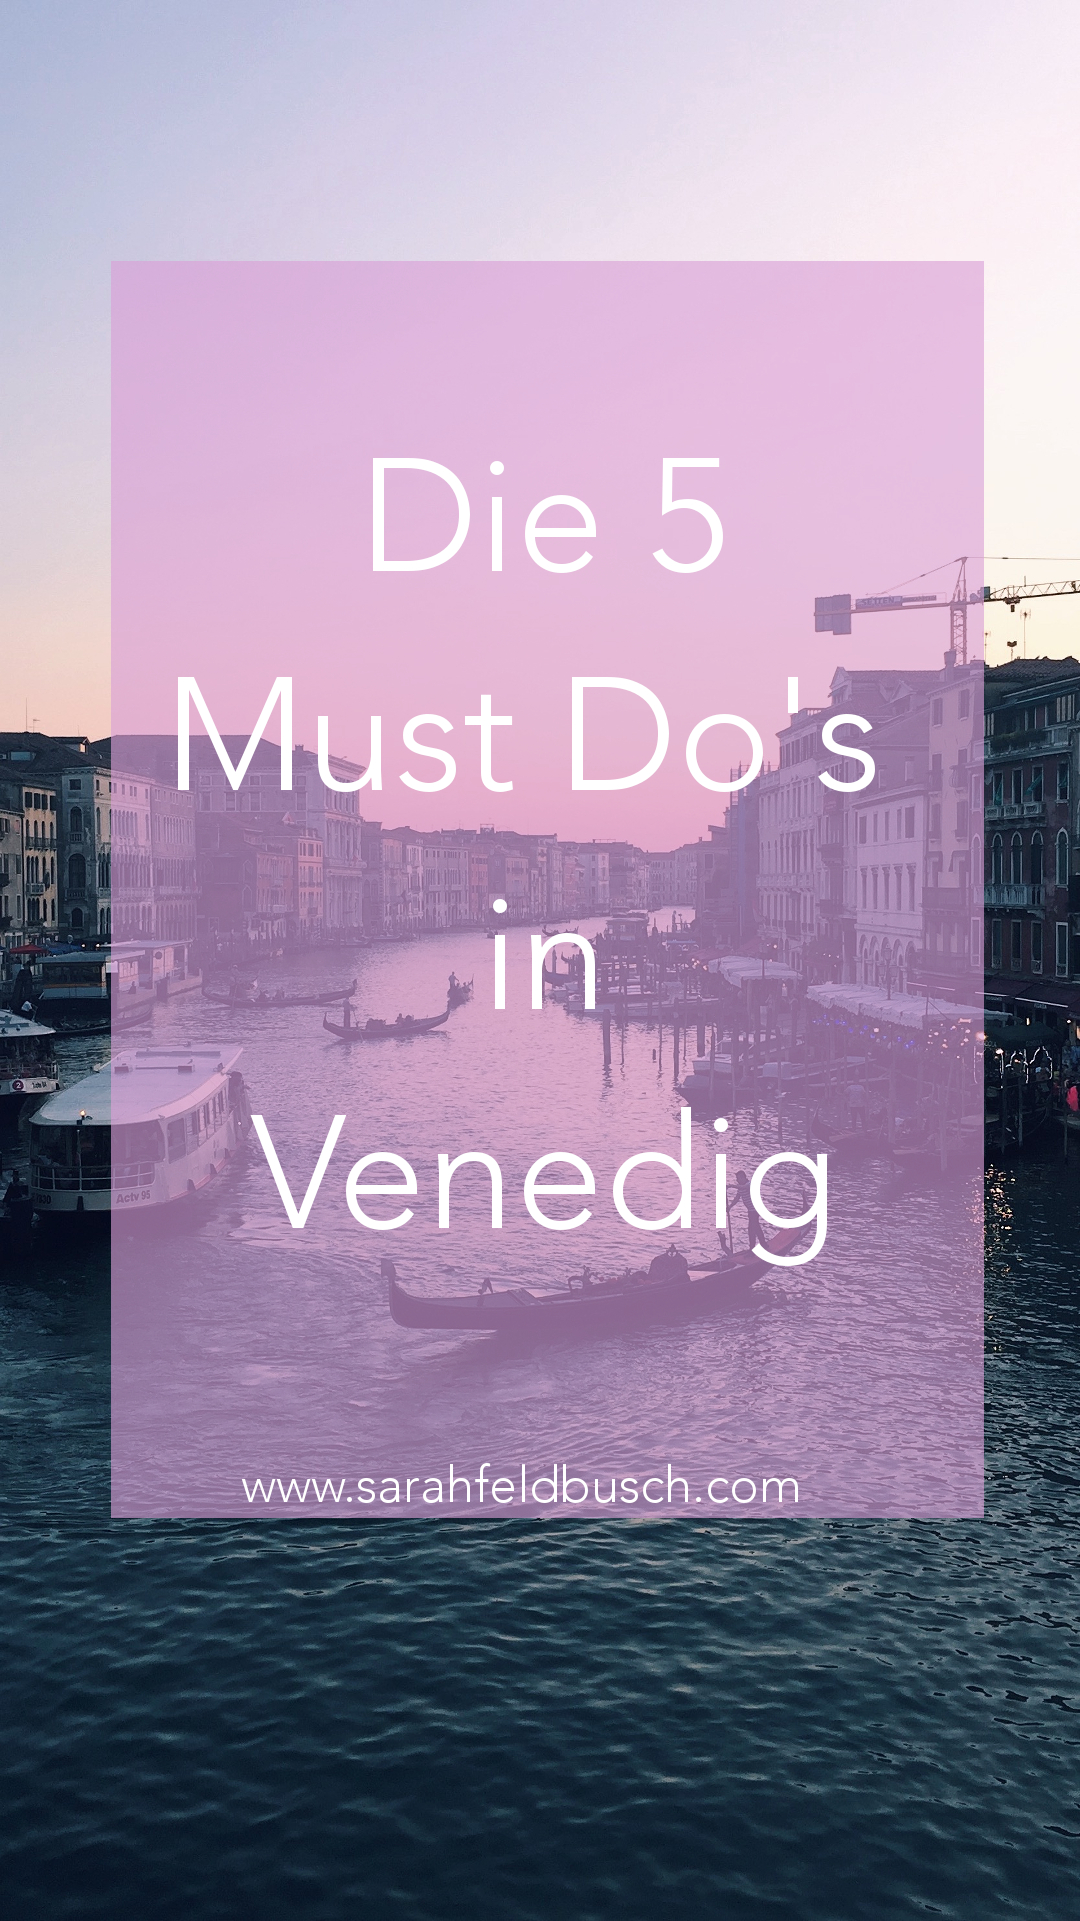 die 5 must dos in venedig